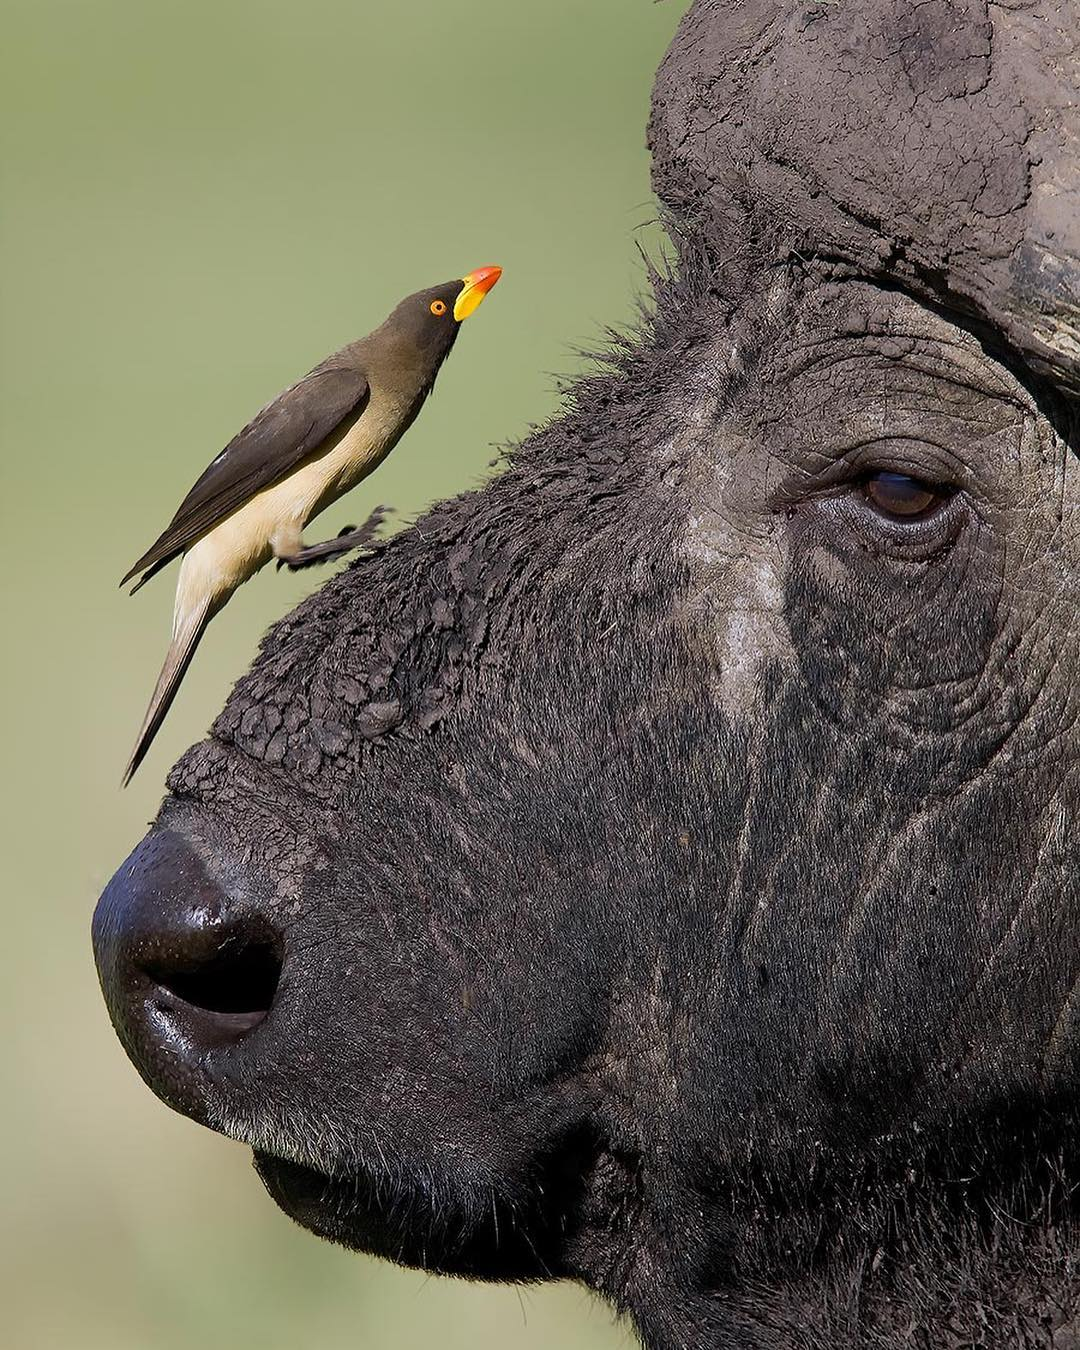 Despite their size difference, African Buffalos and Oxpeckers have formed a convenient symbiotic relationship